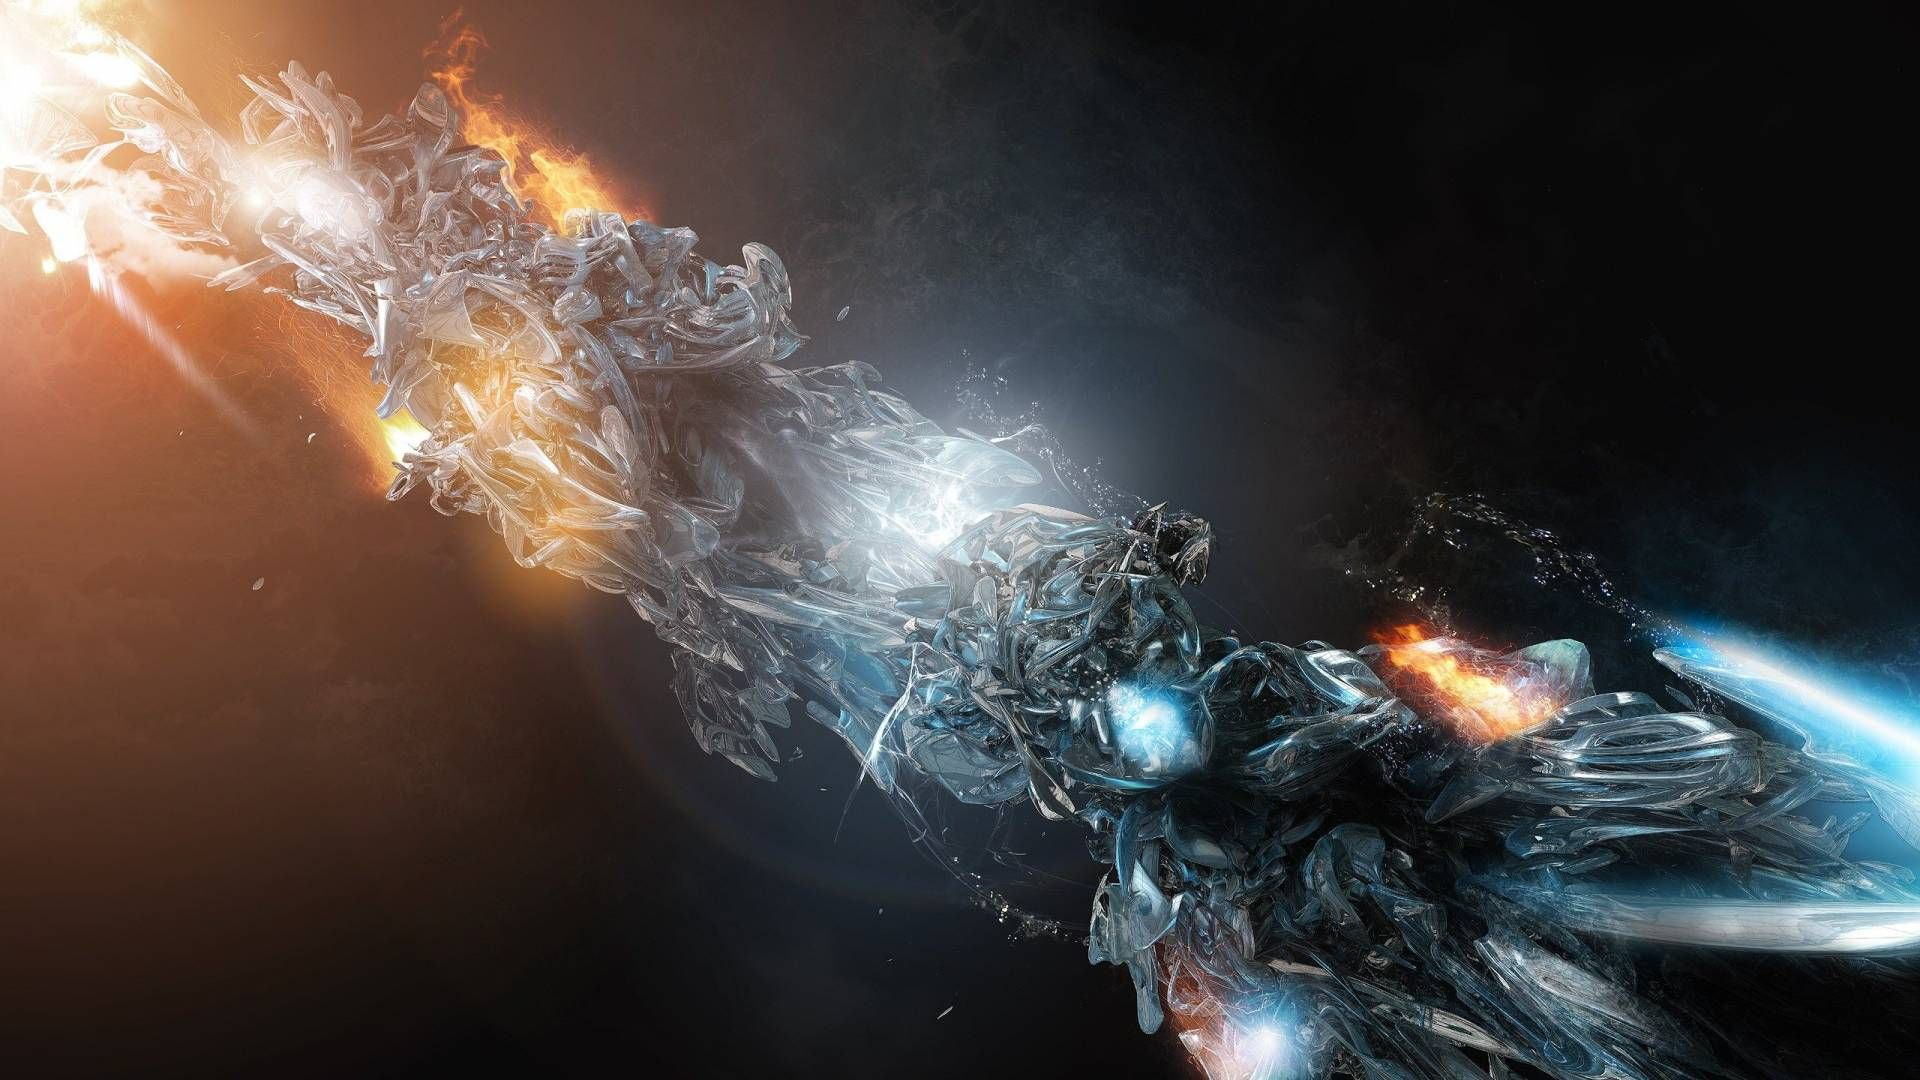 Wallpapers Collection «Cool Backgrounds» | HD Wallpapers ...